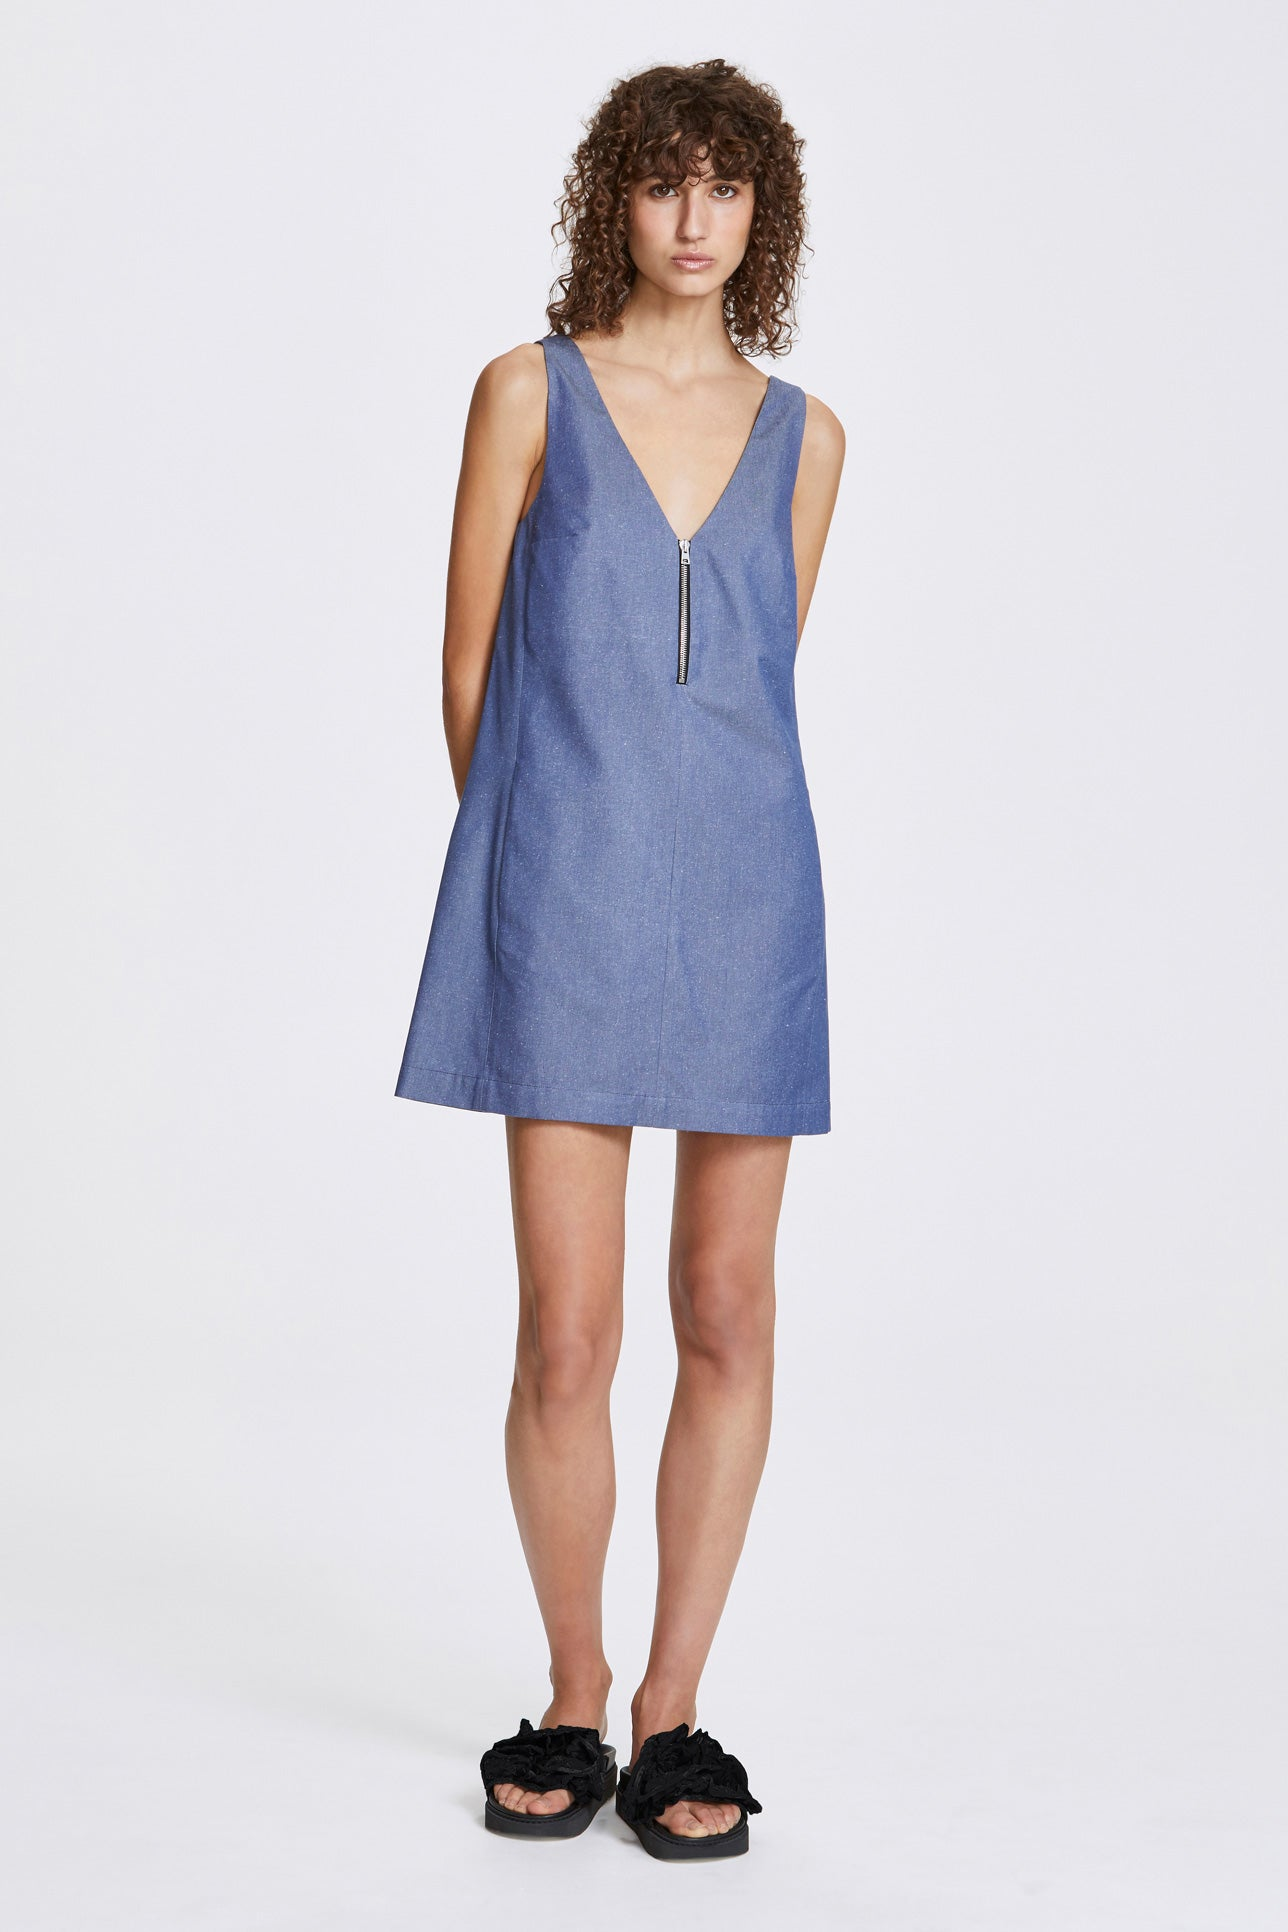 Zip a-line dress - Silk cotton - Blue denim